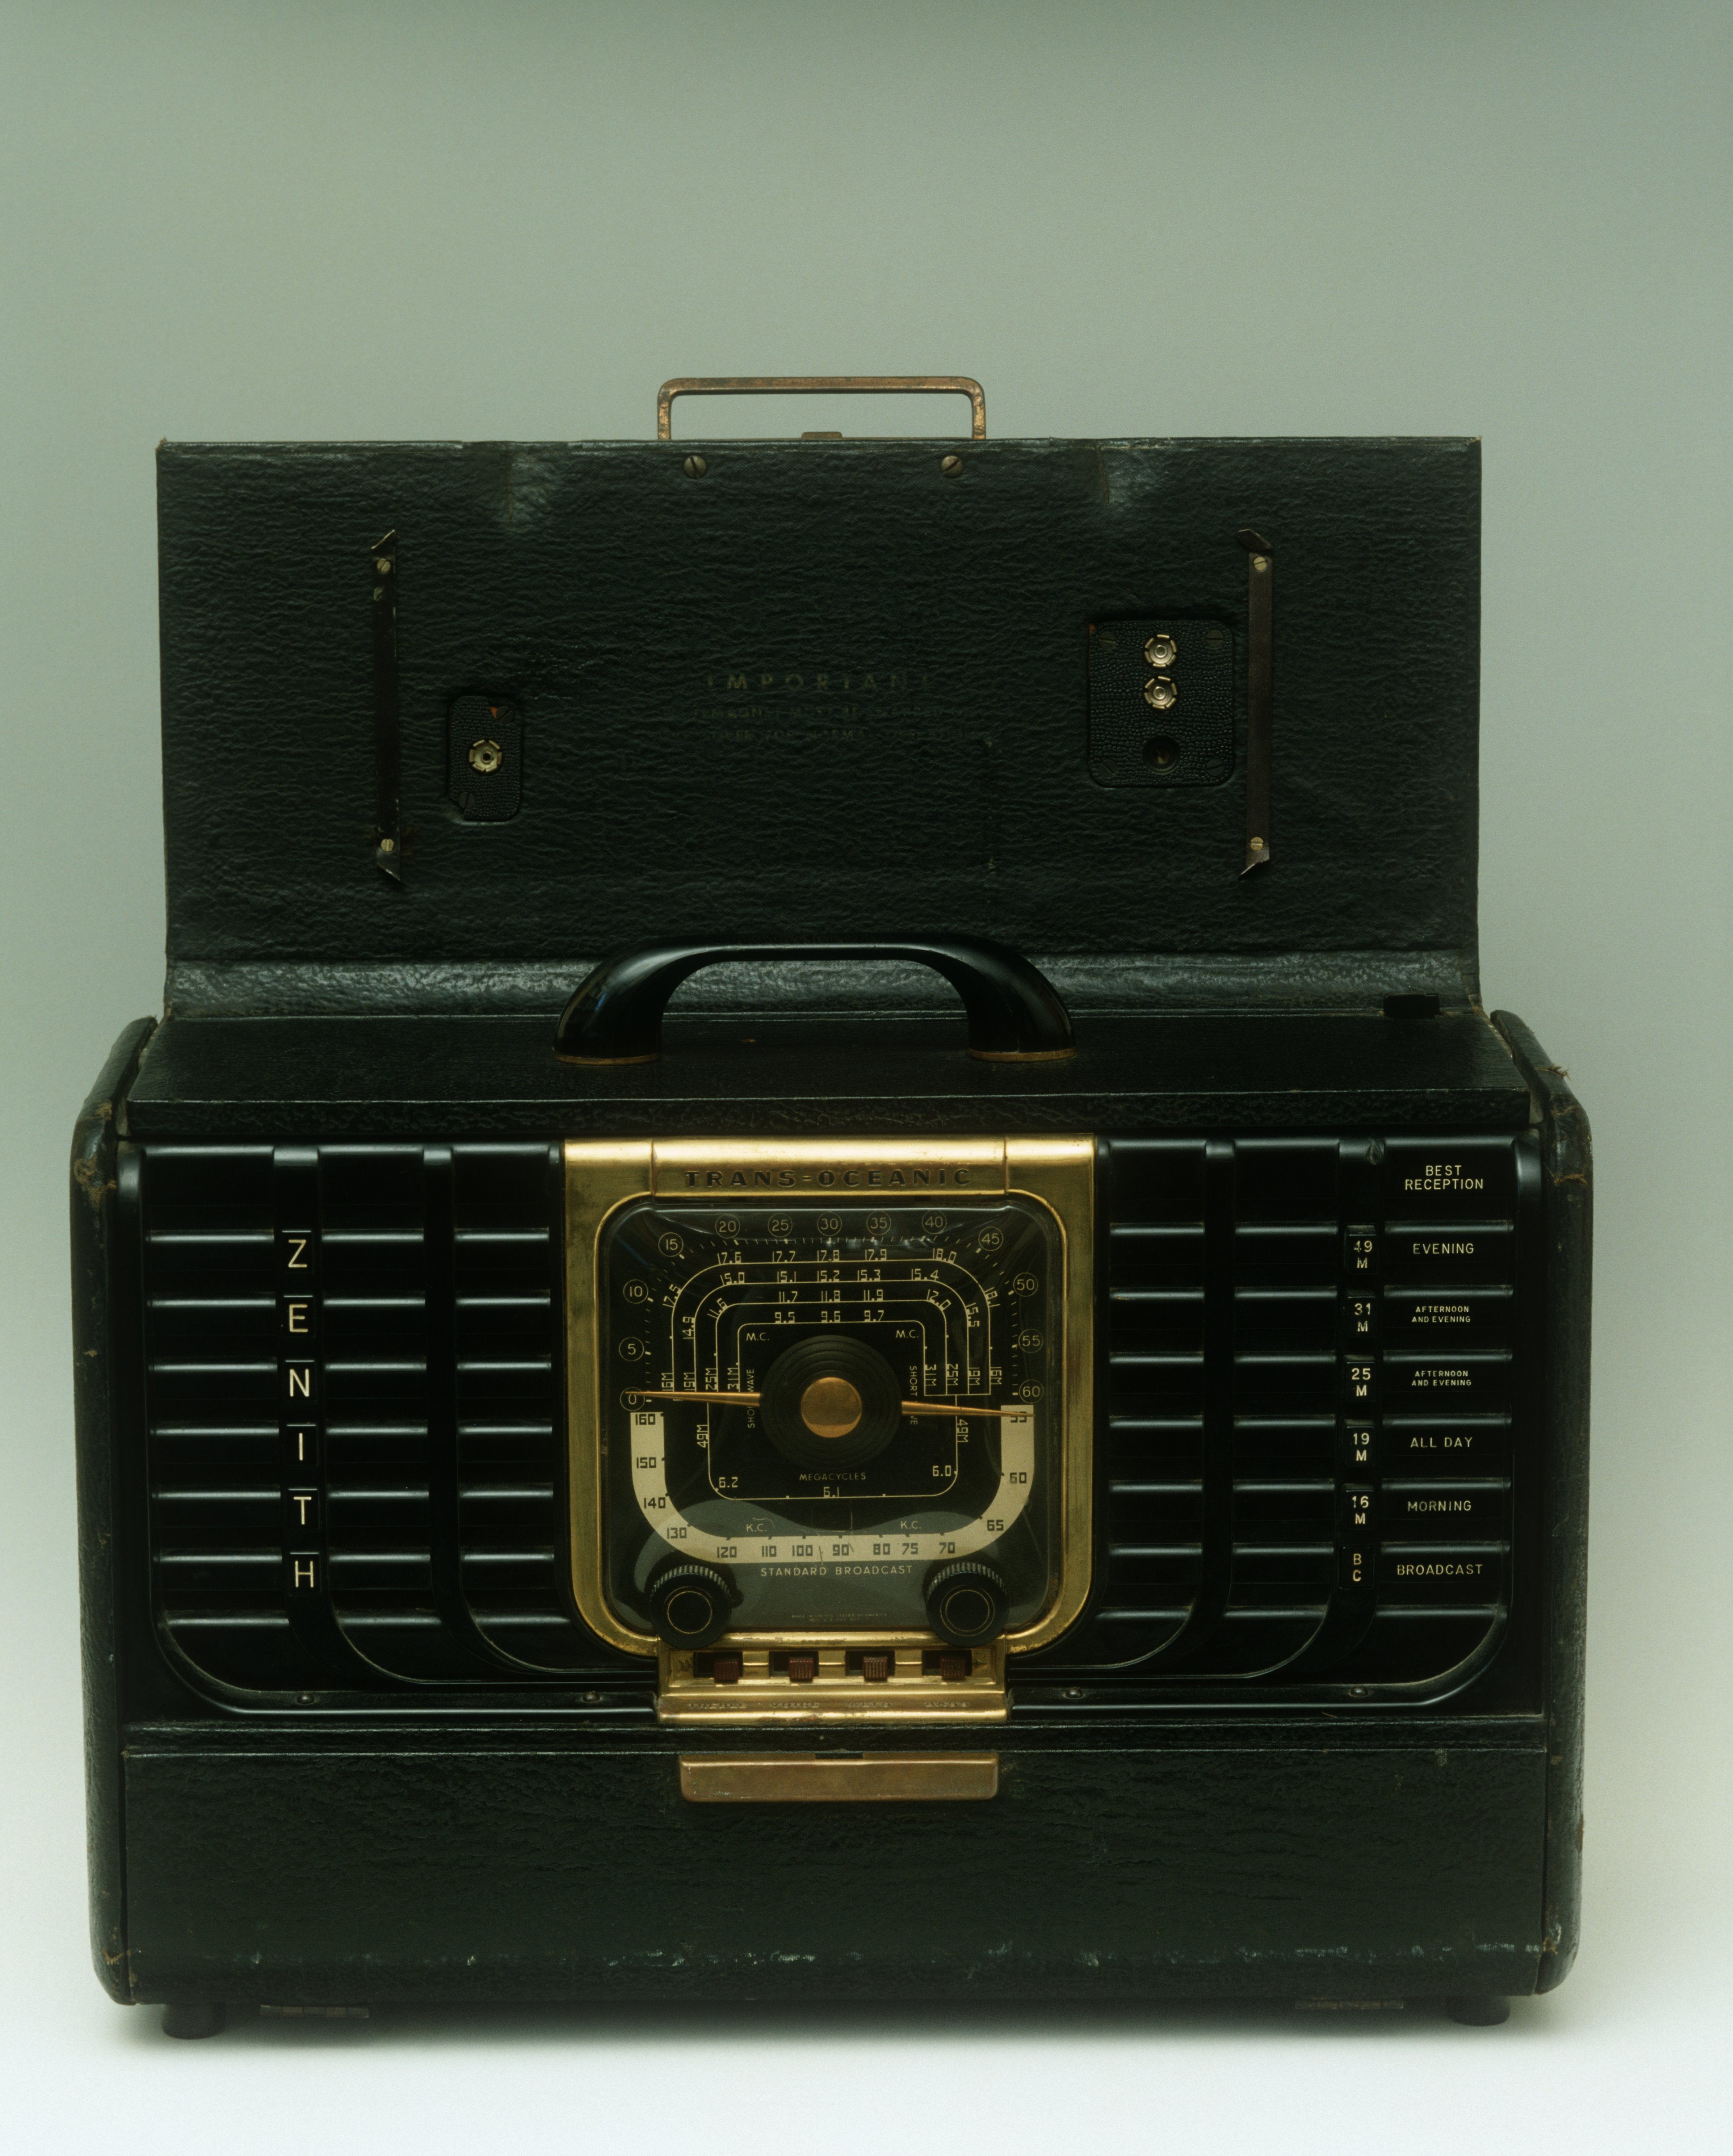 Zenith Transoceanic radio, made in 1946